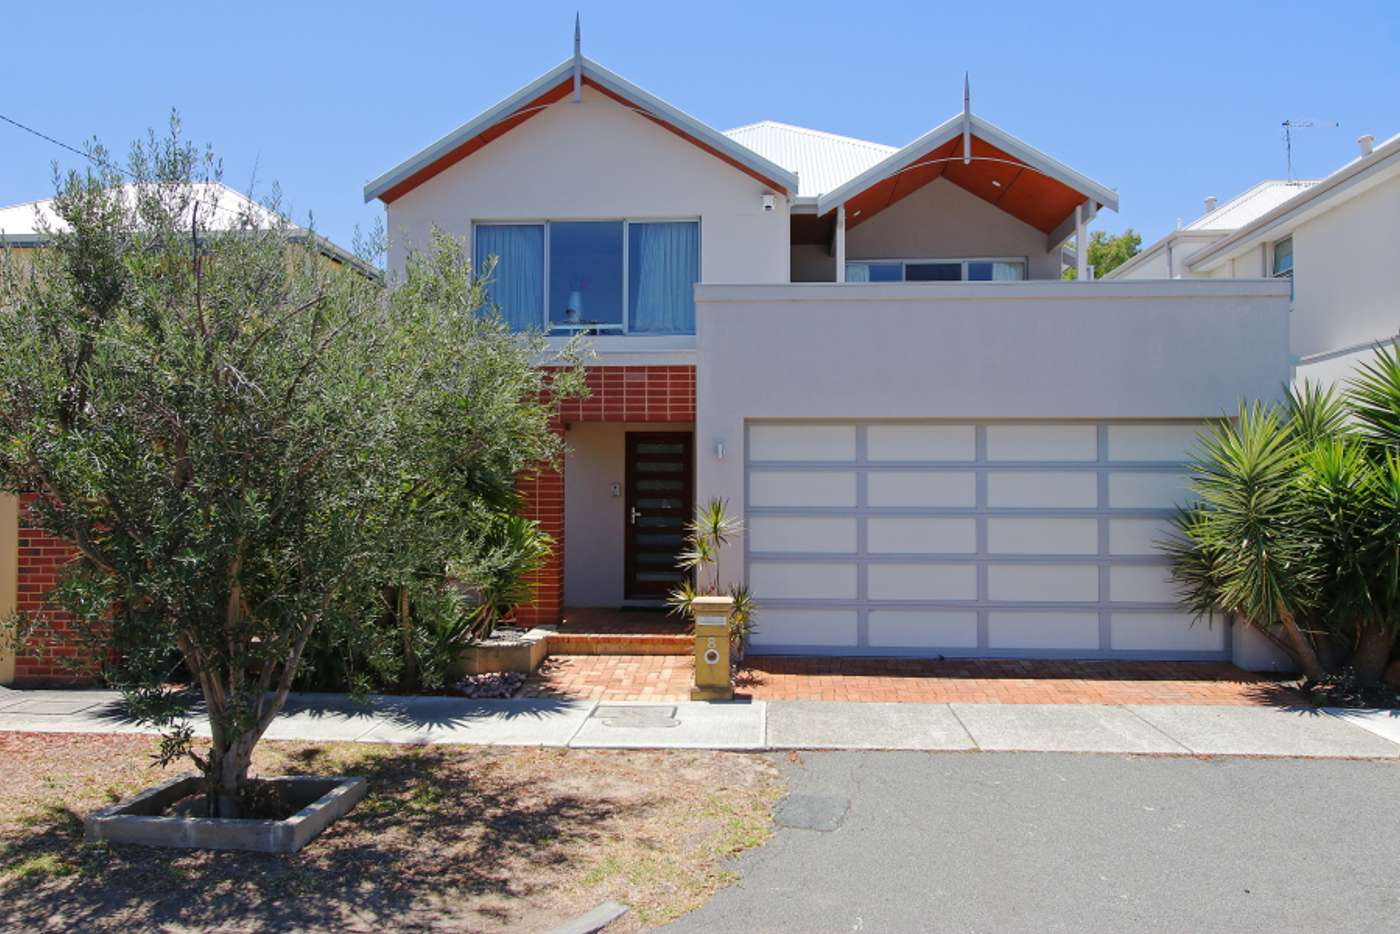 Main view of Homely house listing, 8 Loch Street, North Perth WA 6006